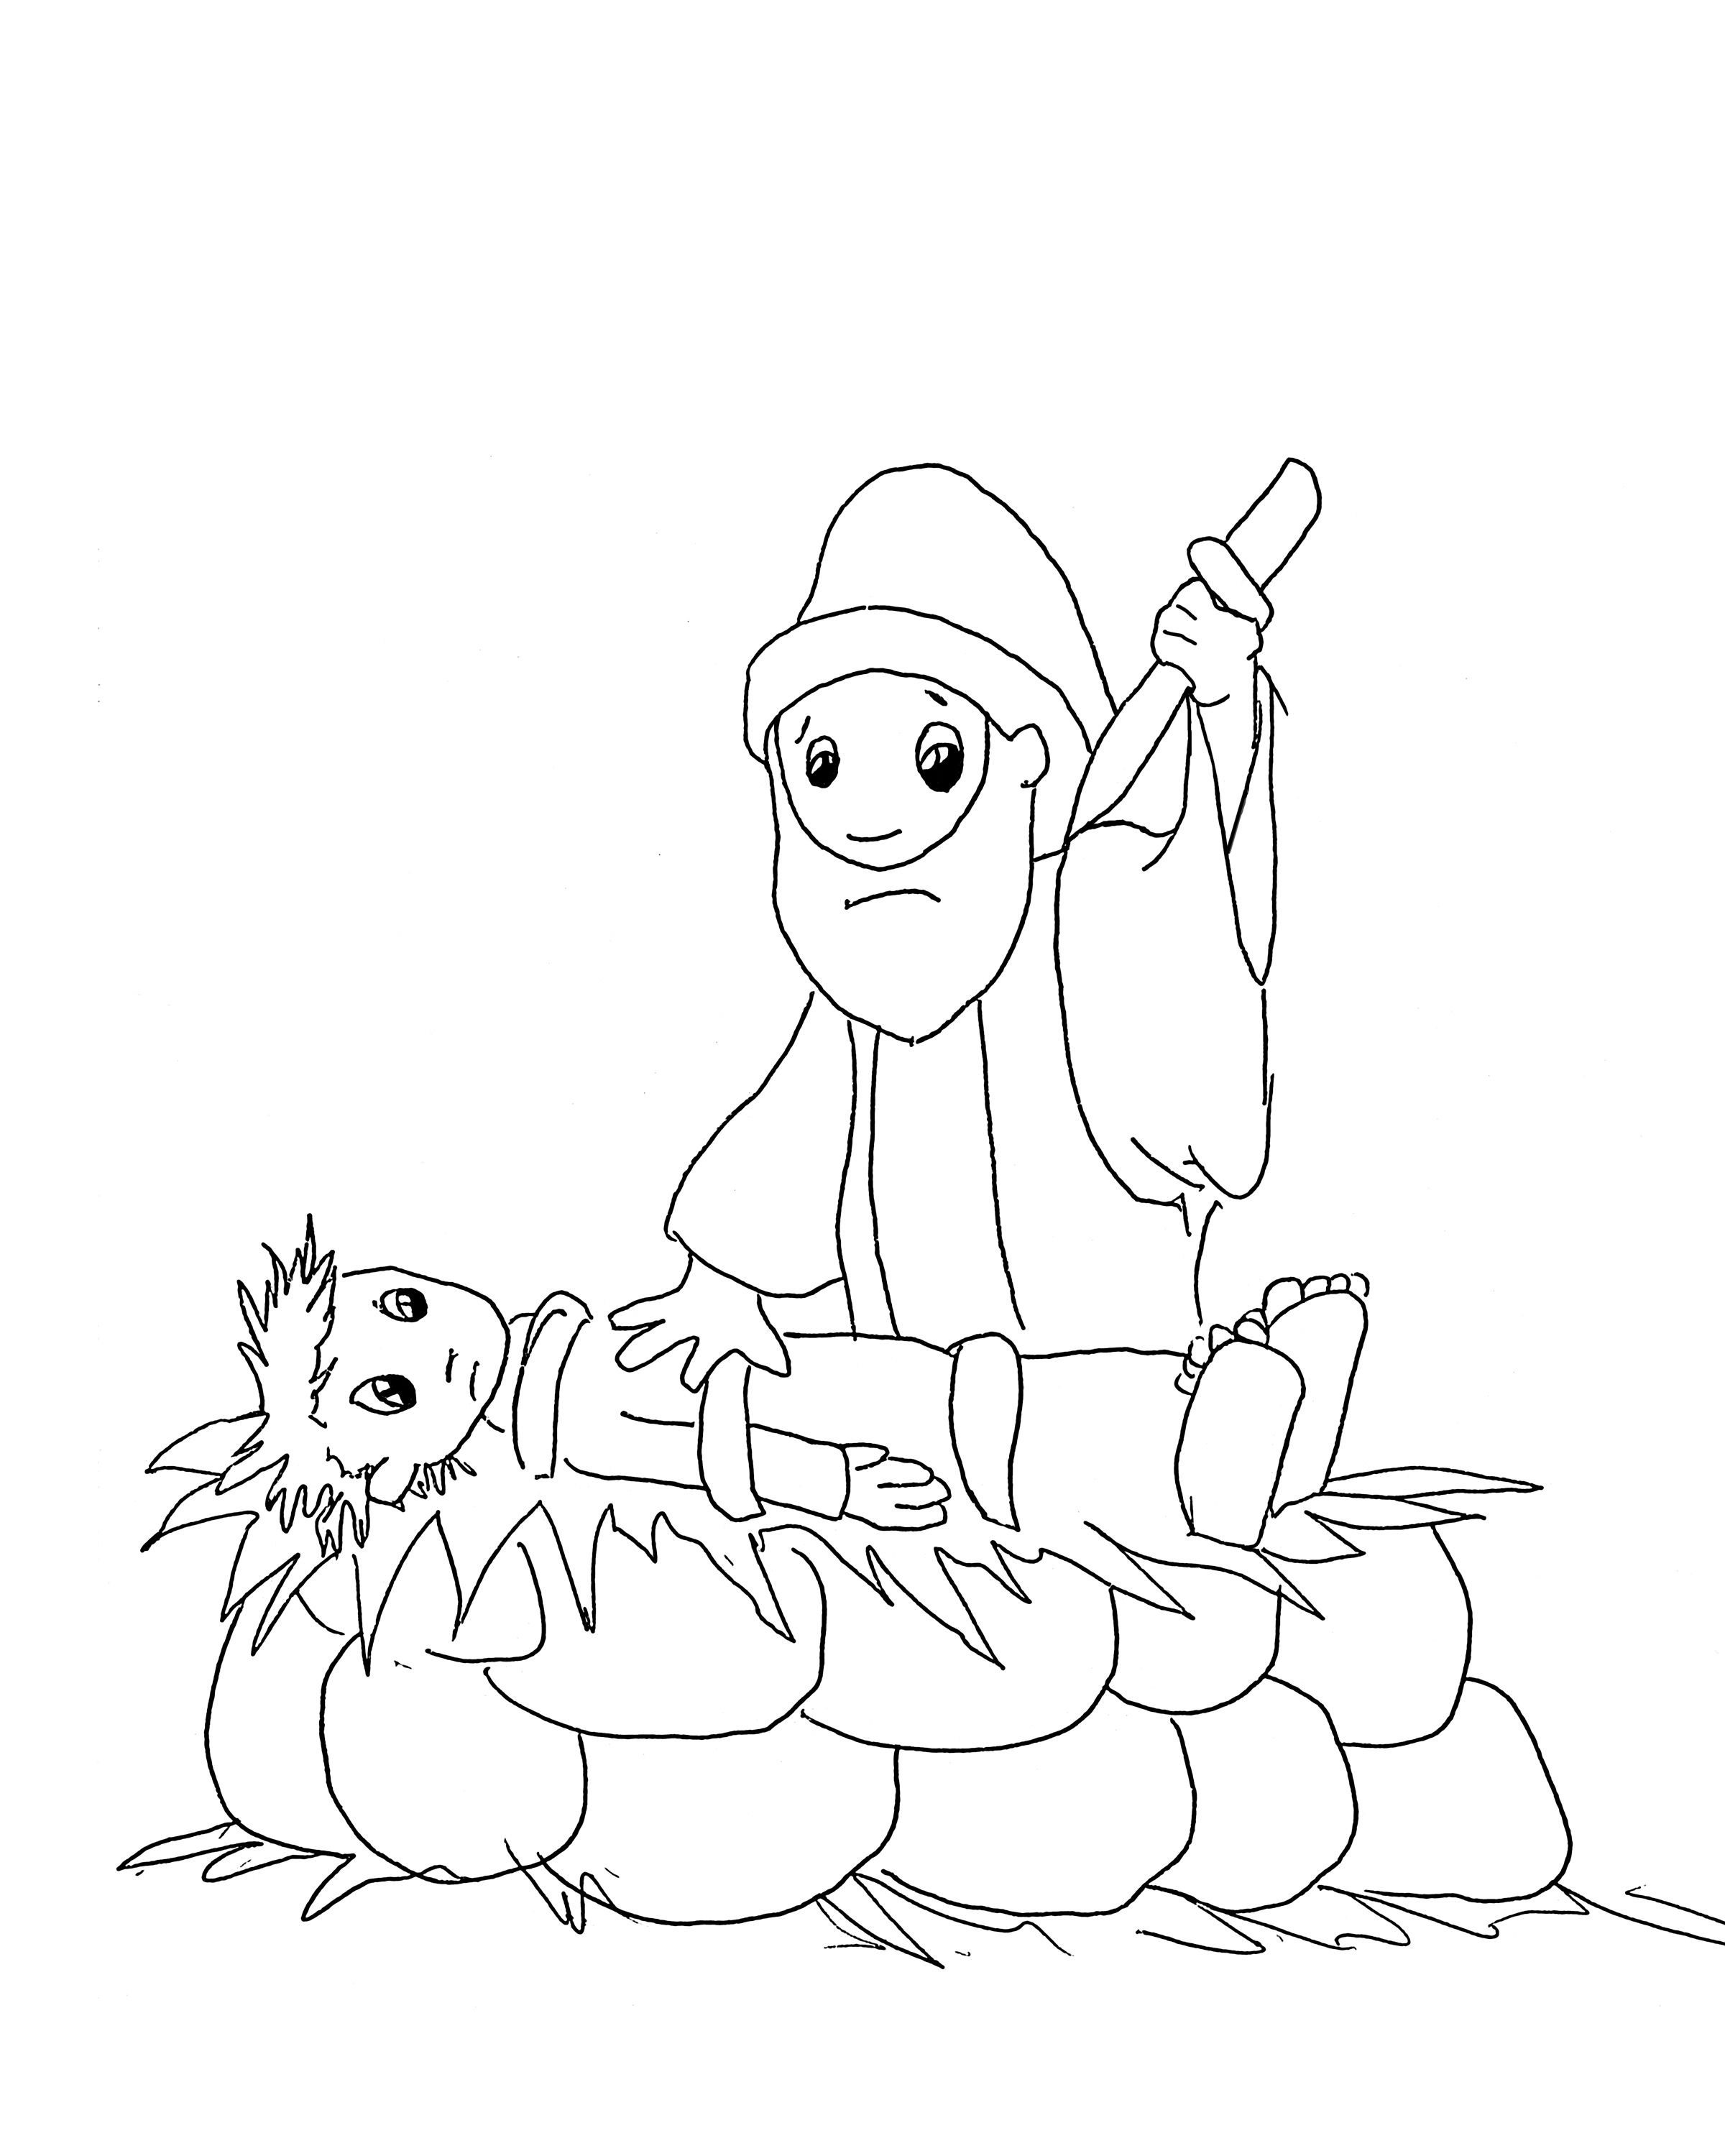 A picture from one of the coloring books. Faithful Abraham